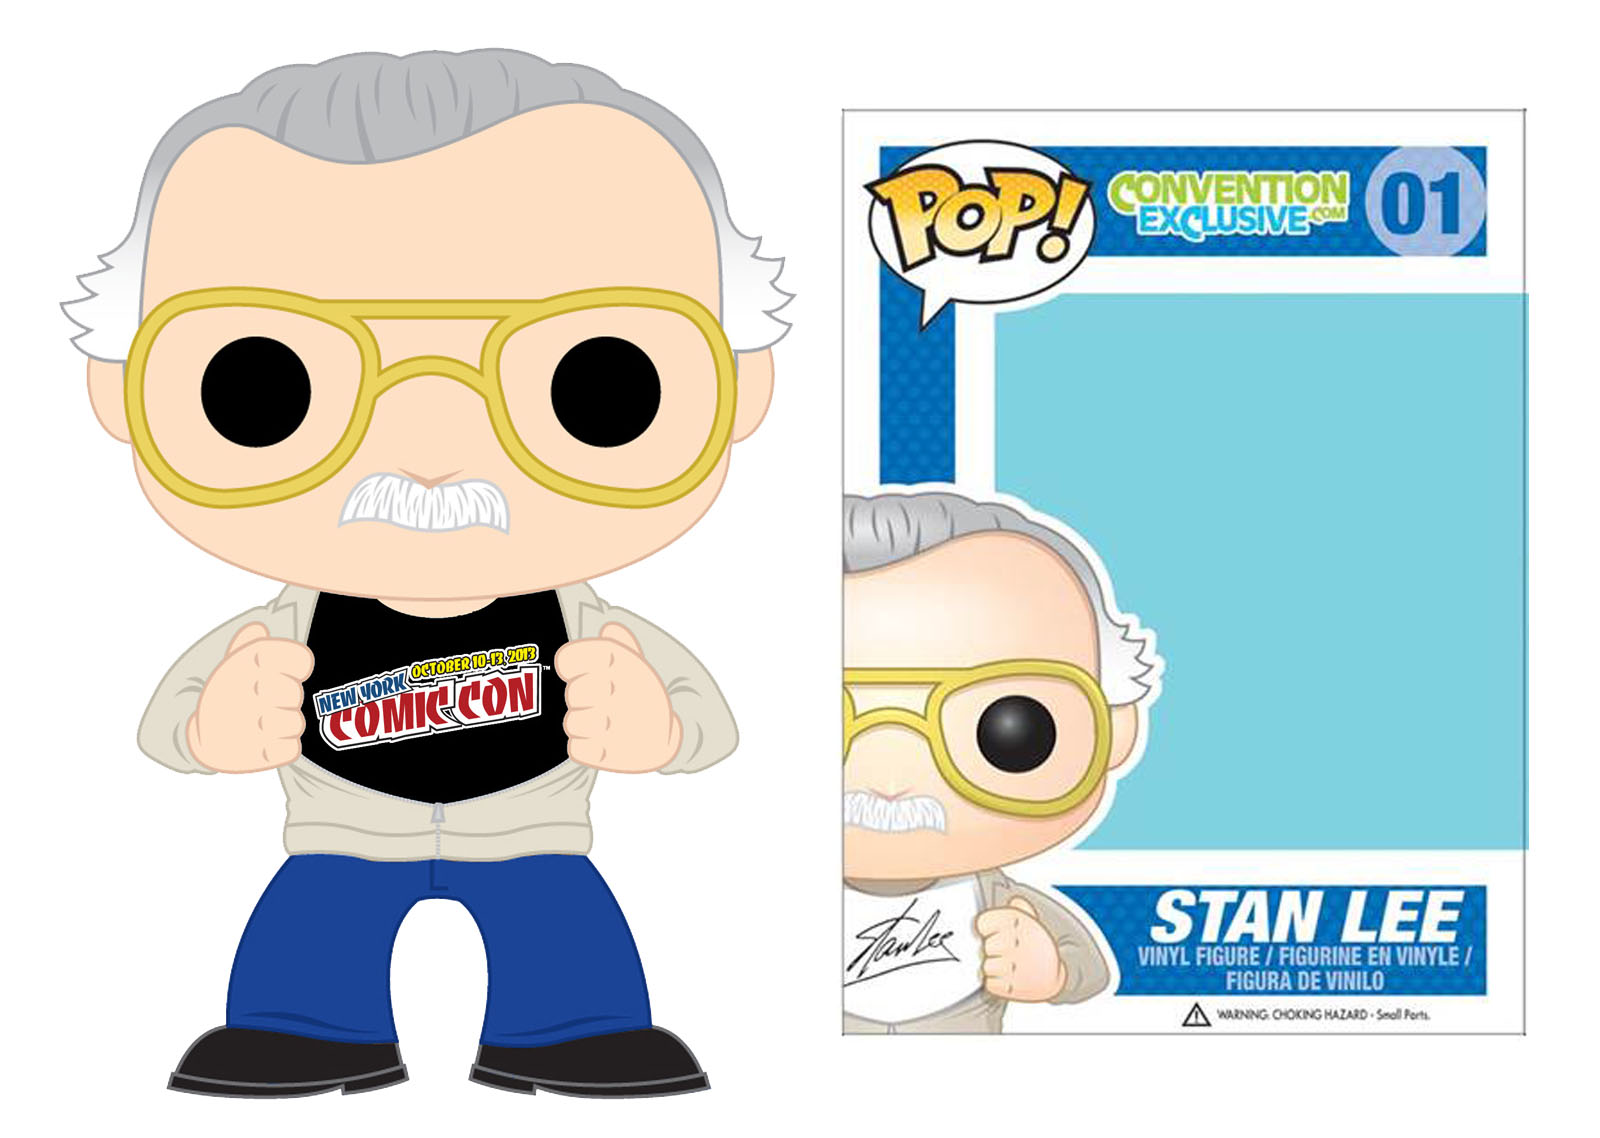 Stan Lee NYCC Ad